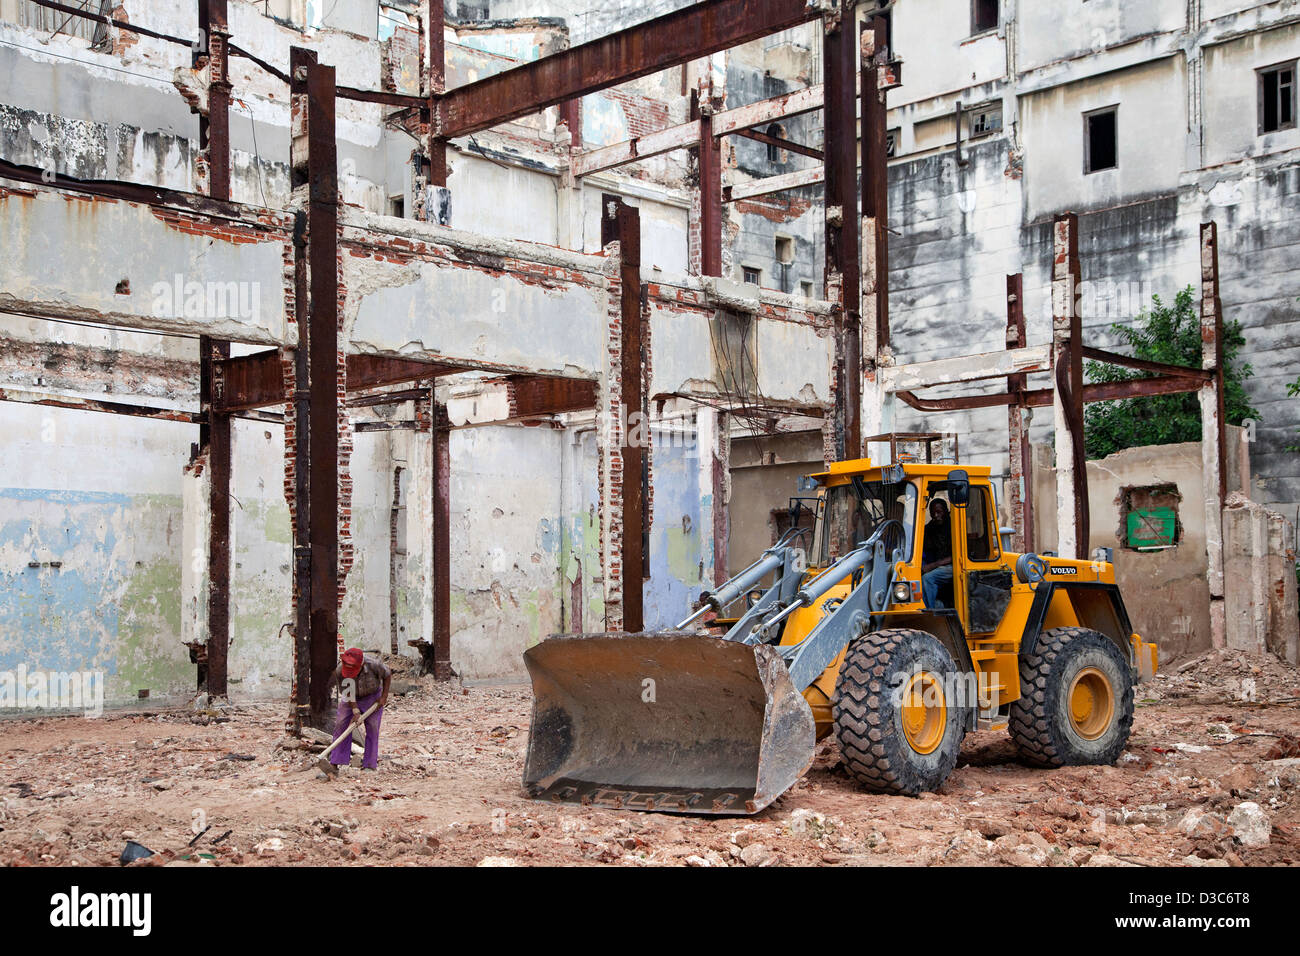 Workers and bulldozer renovating old house in Havana, Cuba, Caribbean - Stock Image